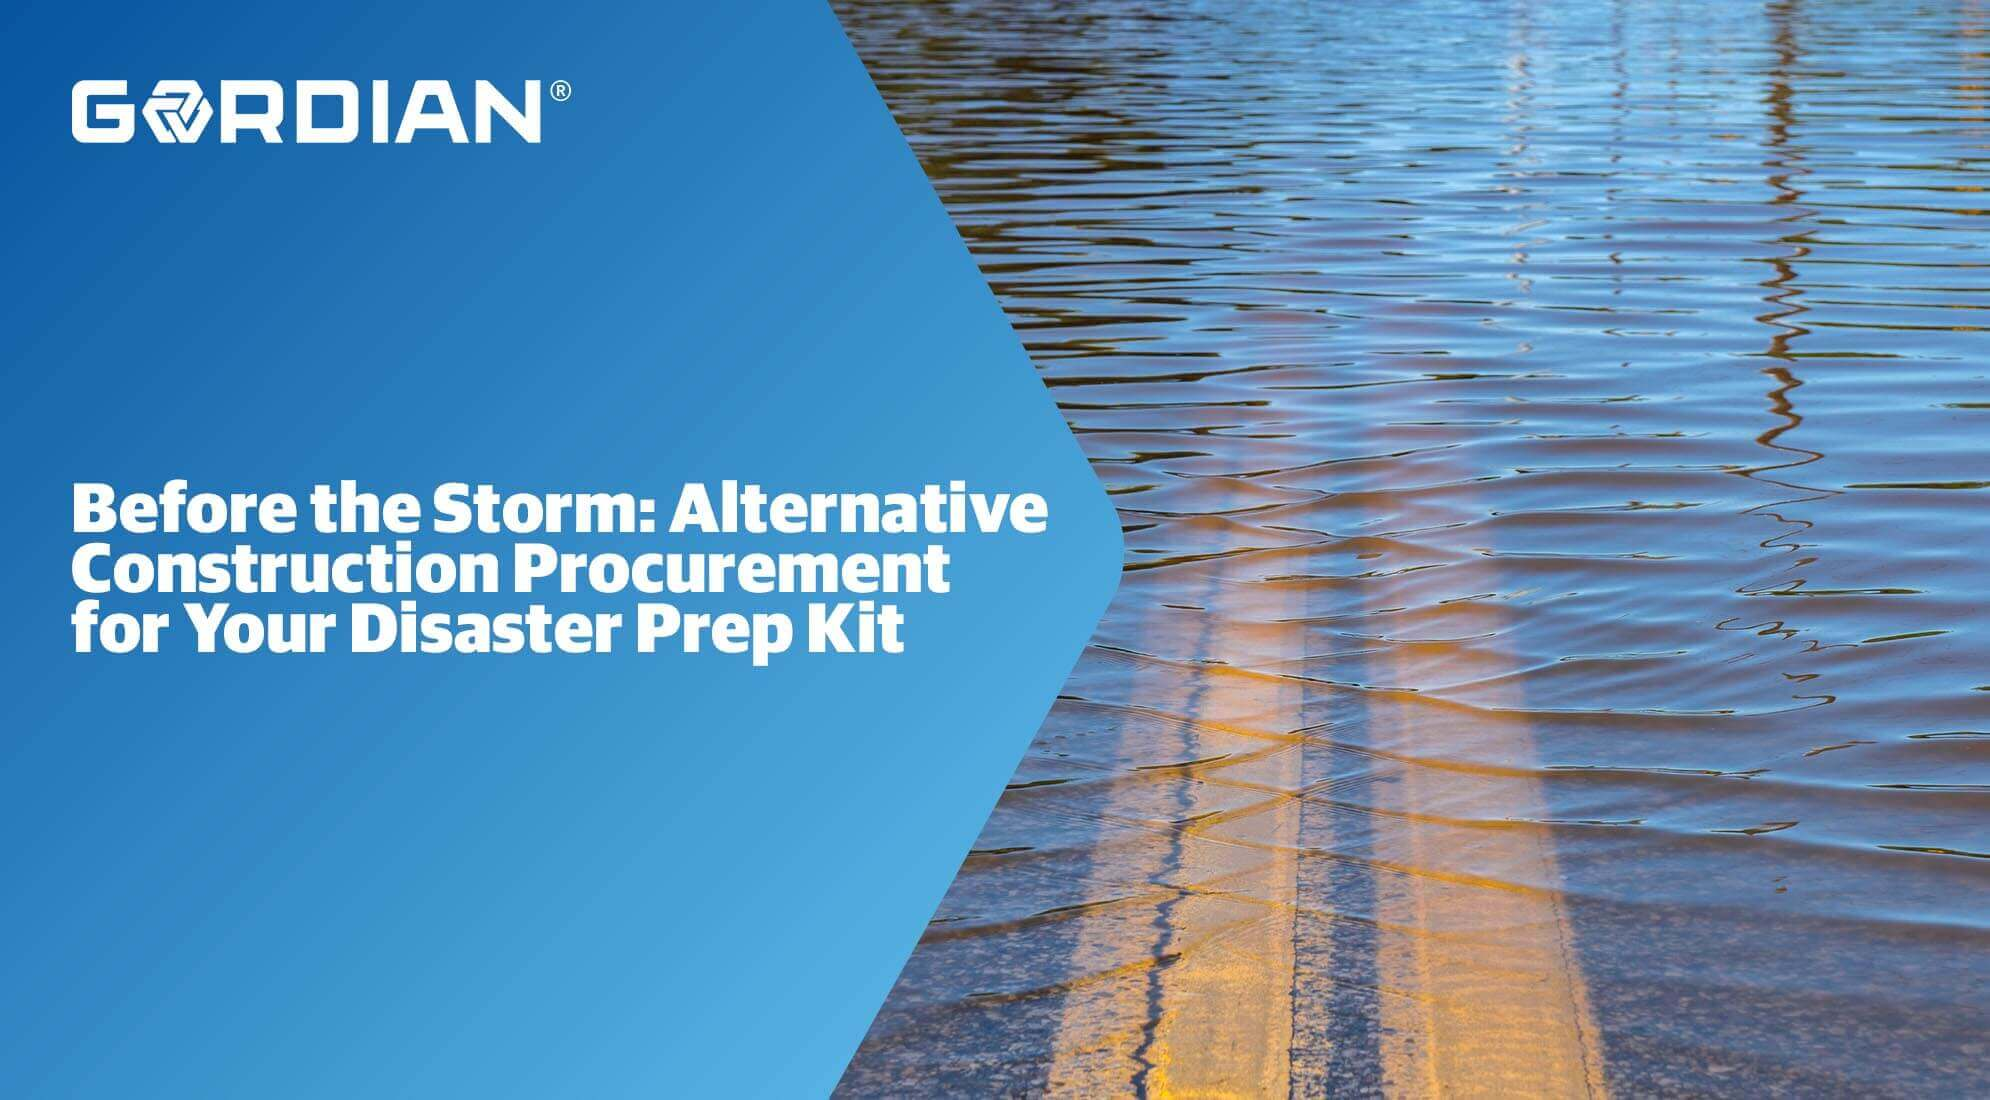 Before the Storm: Alternative Construction Procurement for Your Disaster Prep Kit 5